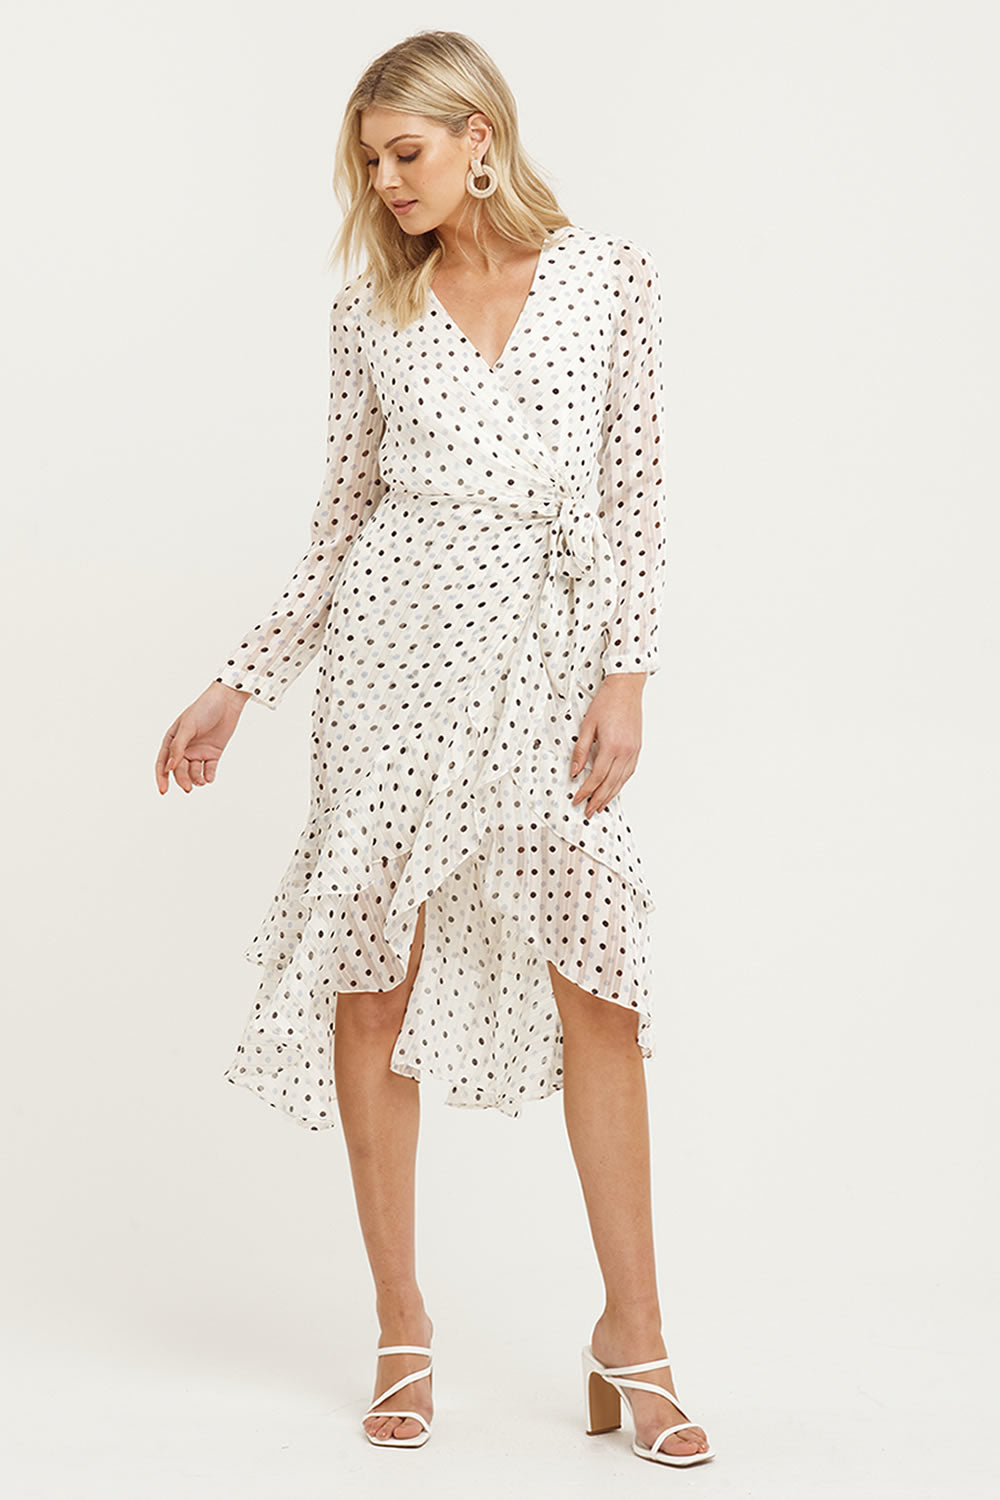 Cooper St Palma Long Sleeve Frill Dress